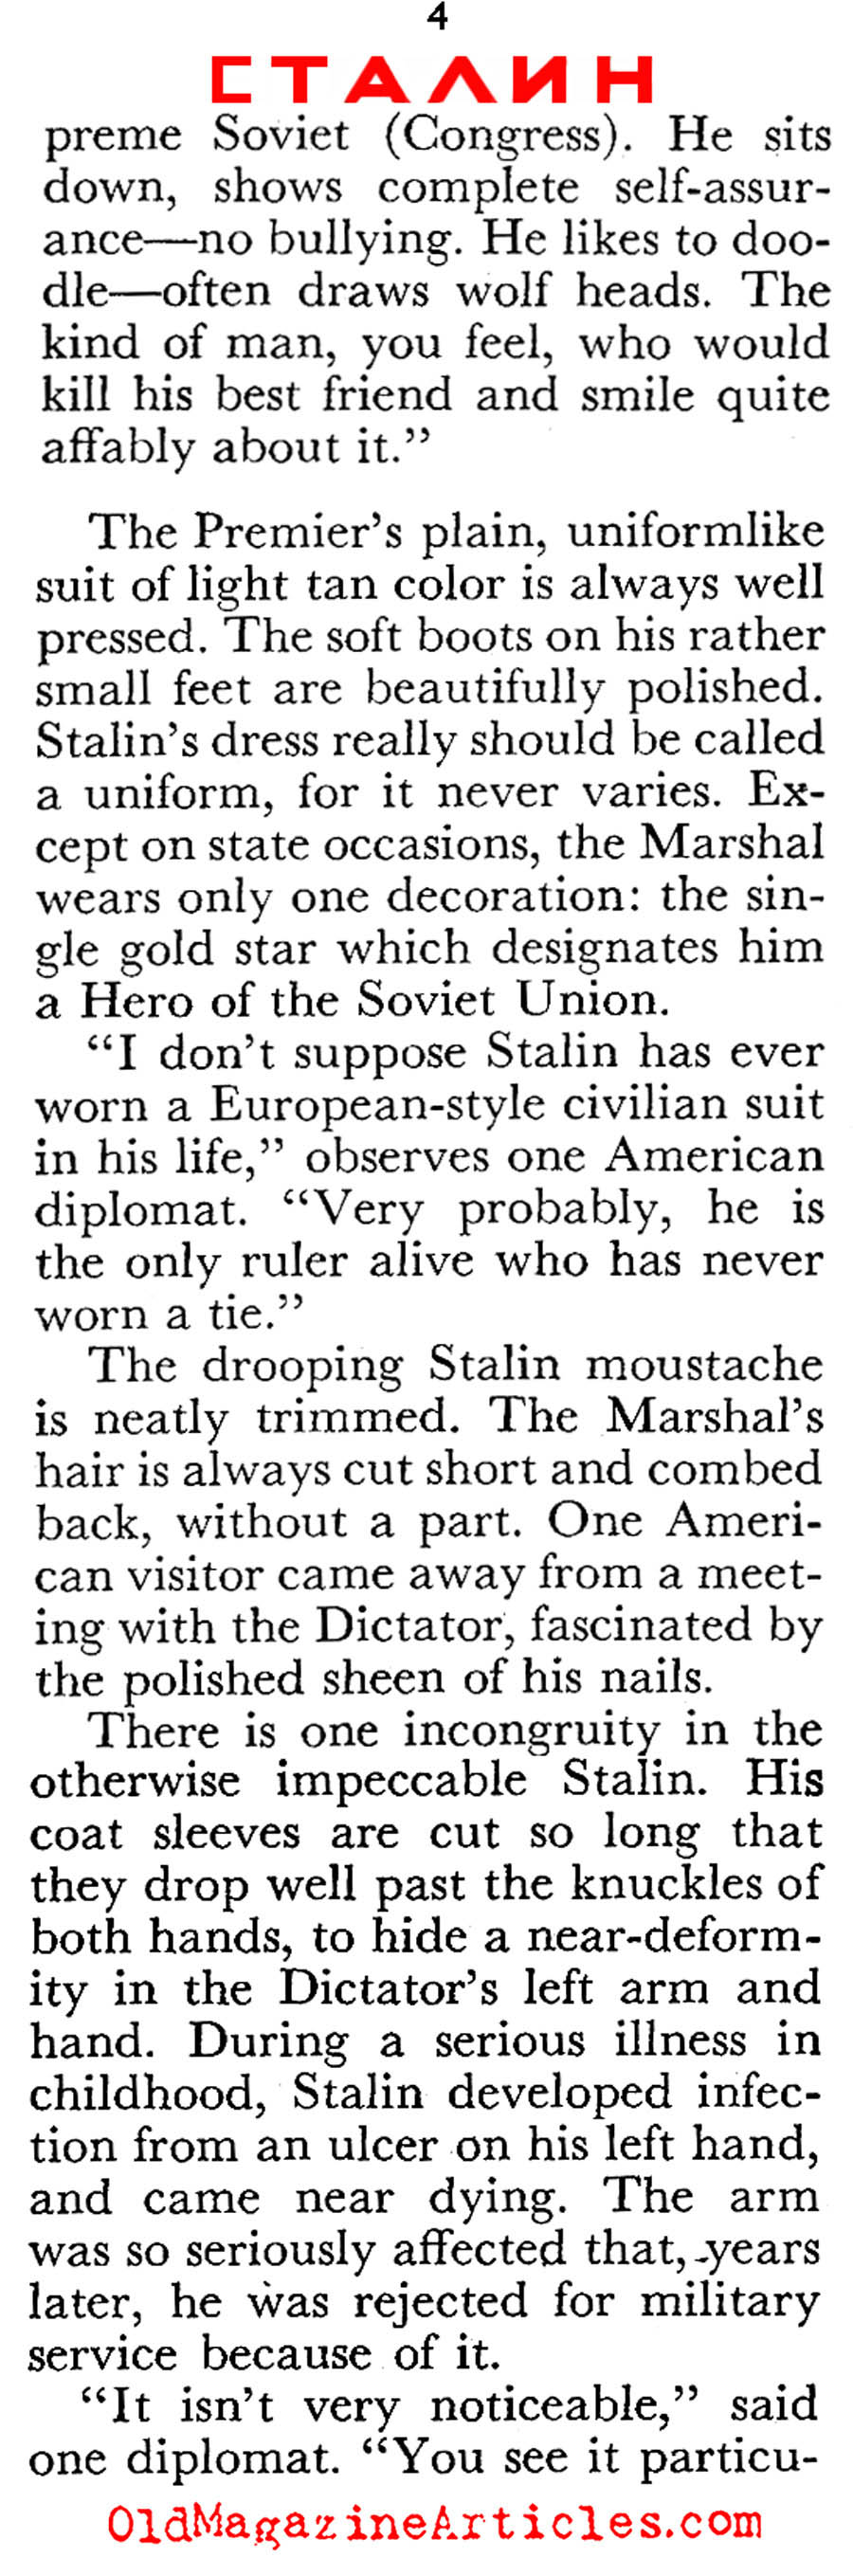 Stalin at 72 (Coronet Magazine, 1952)